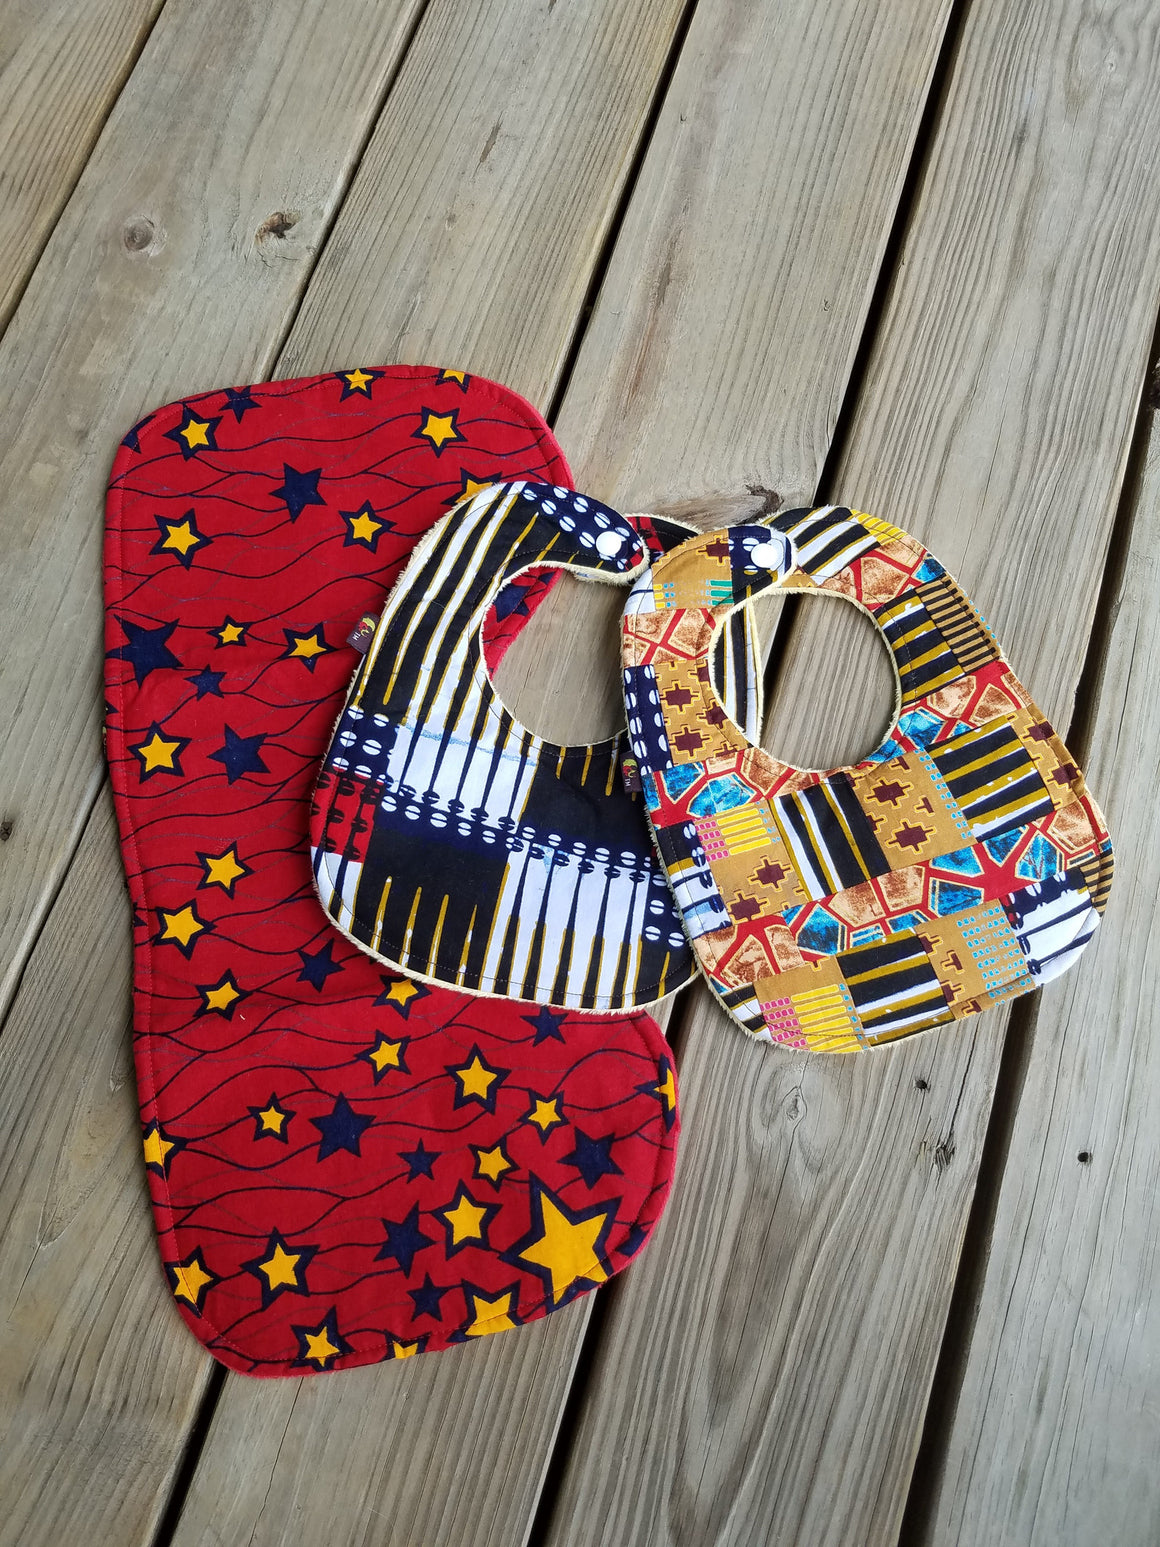 3 PC -You Are A Star Baby Bib and Burp Cloth Set